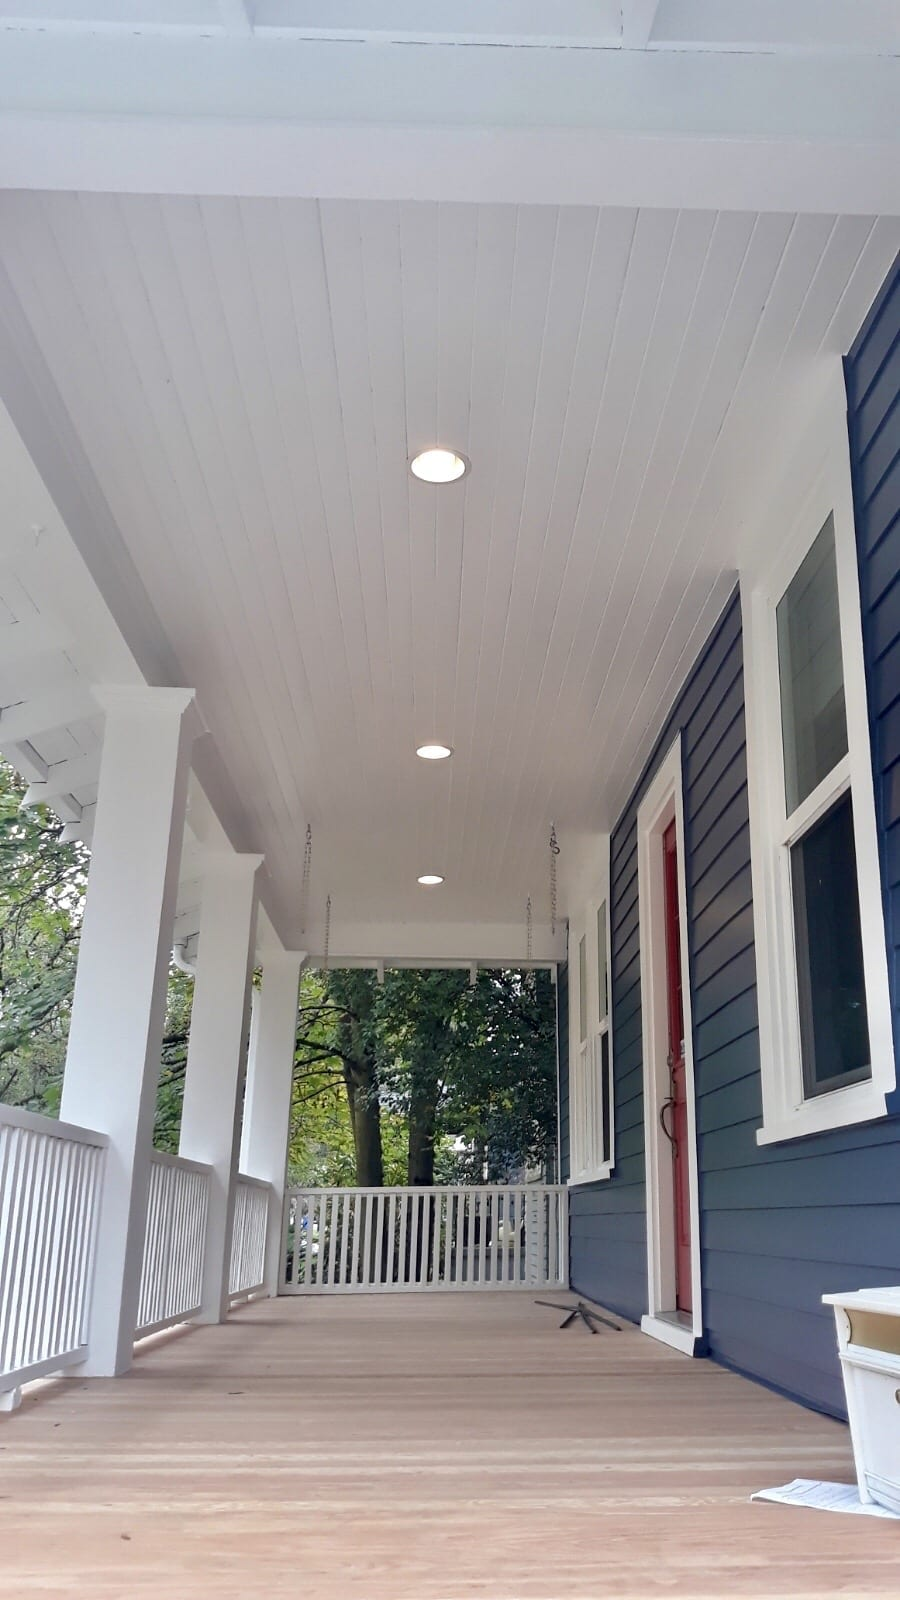 Finished Siding installation in Portland ceiling of porch